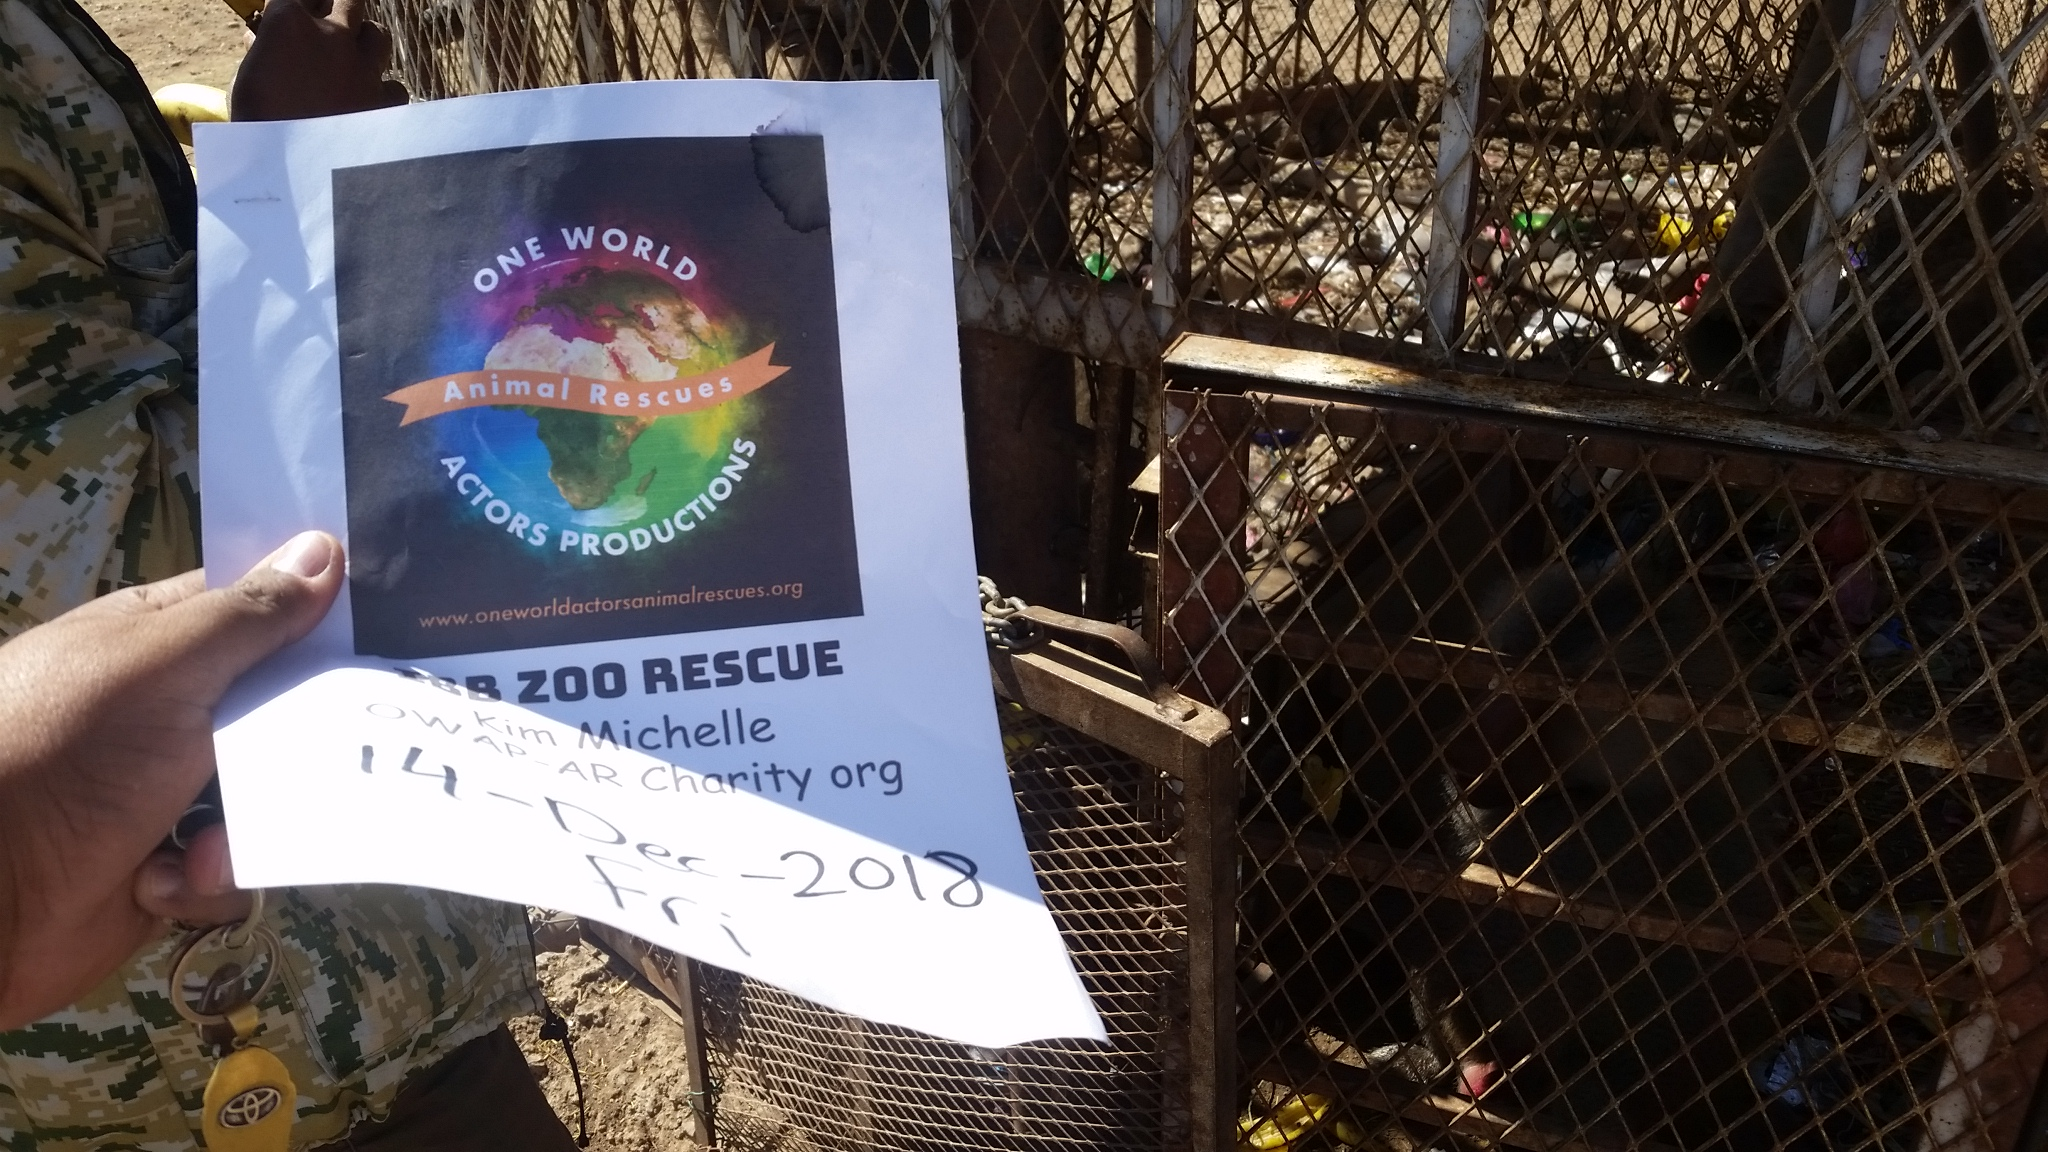 ibb zoo 14 DEC 2018 baboons feeding fruit by OWAP-AR with our sign Hisham cordinating yemen zoo rescue.jpg